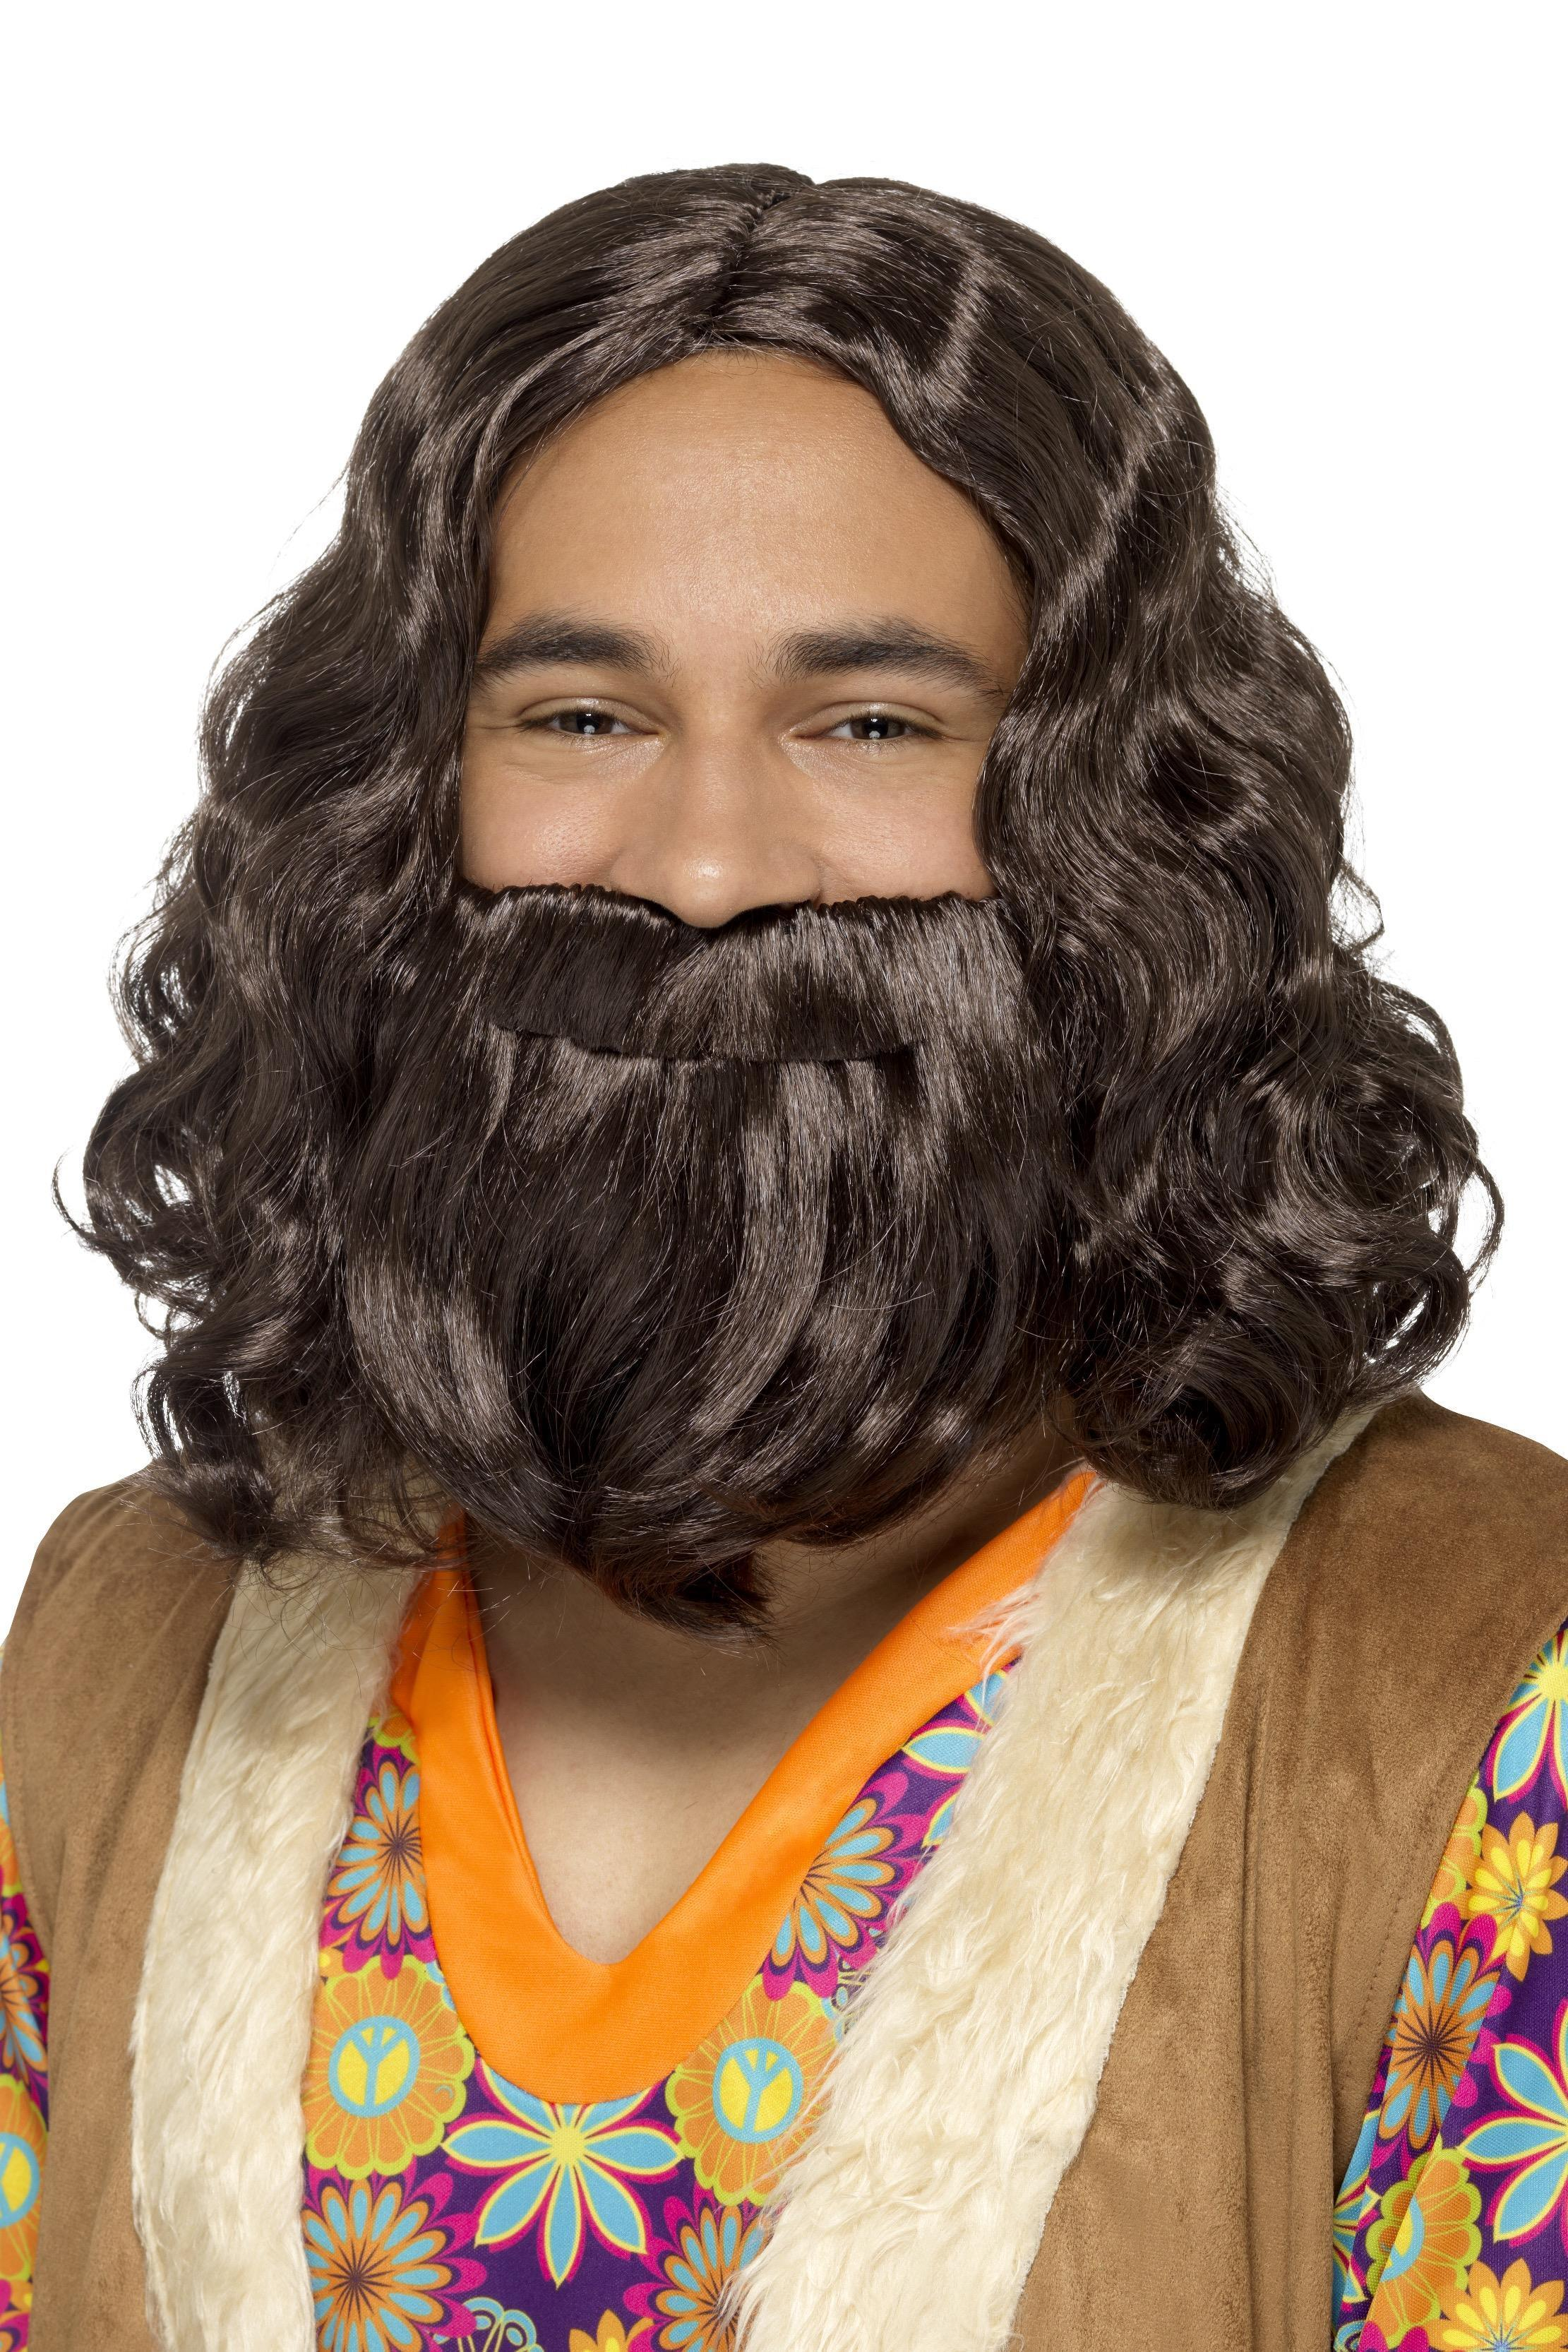 Hippie / Jesus Wig & Beard Set Brown